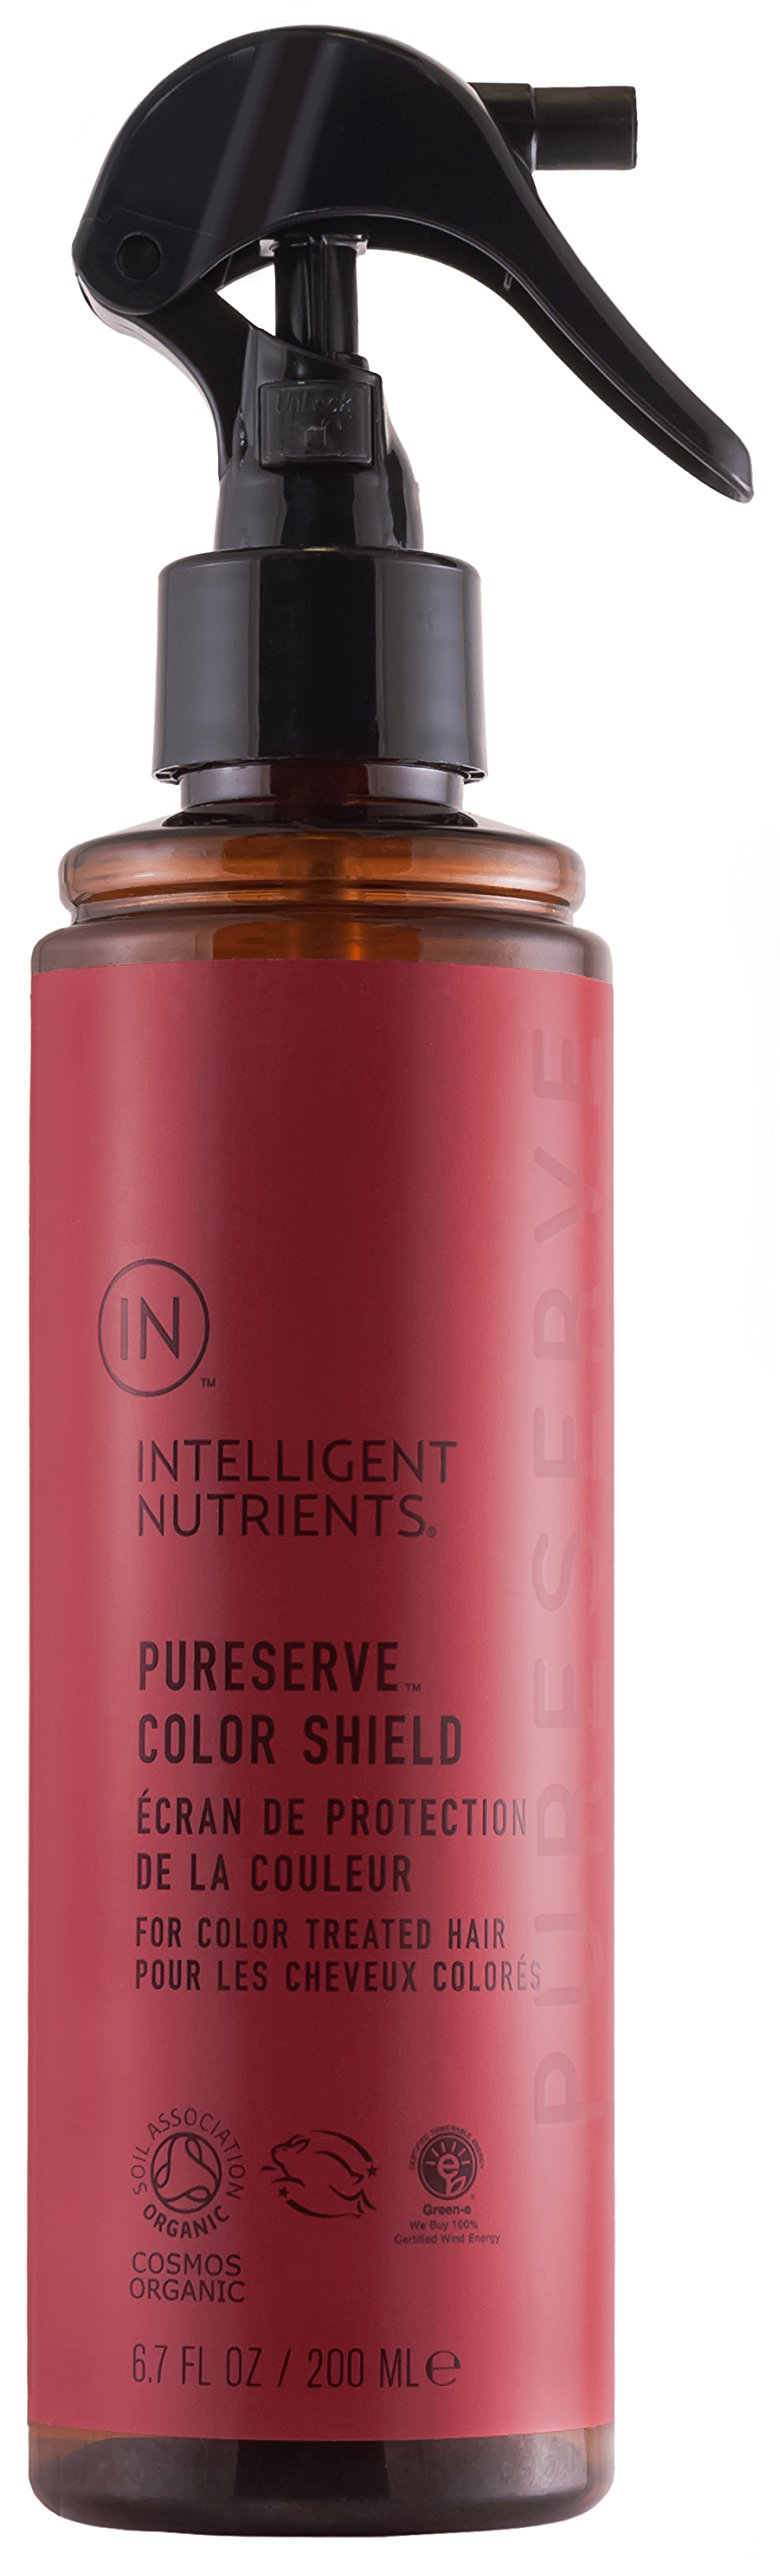 Intelligent Nutrients PureServe Color Shield - Spray for Color-Treated Hair, Protect & Extend Hair Color (6.7 oz) by Intelligent Nutrients